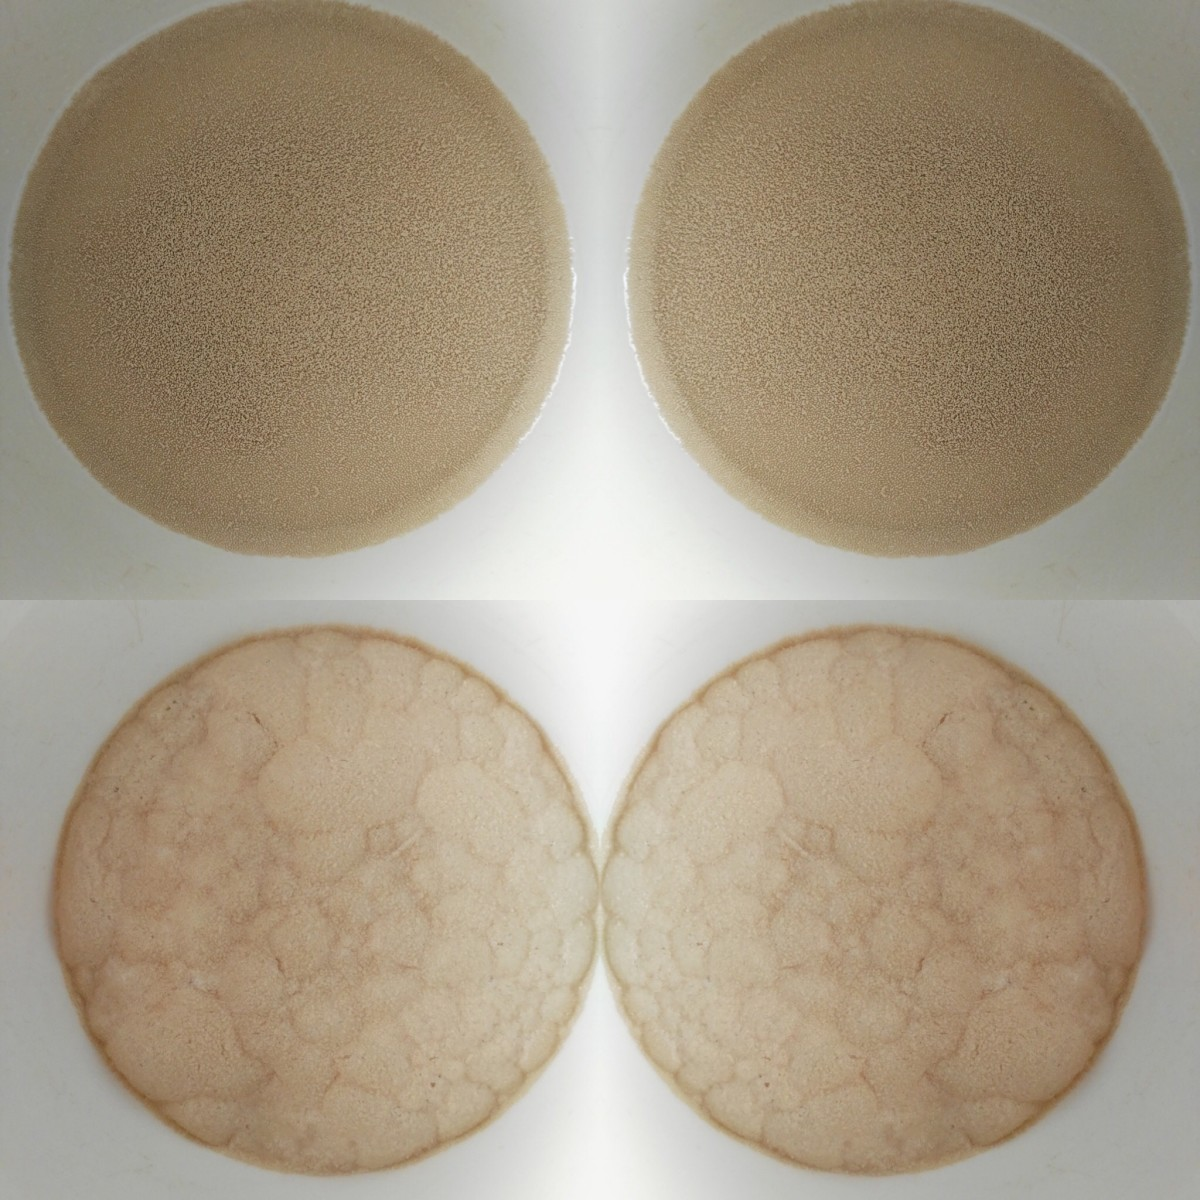 Top image: Yeast sprinkled onto warm milk Bottom image: Yeast after 10 mins